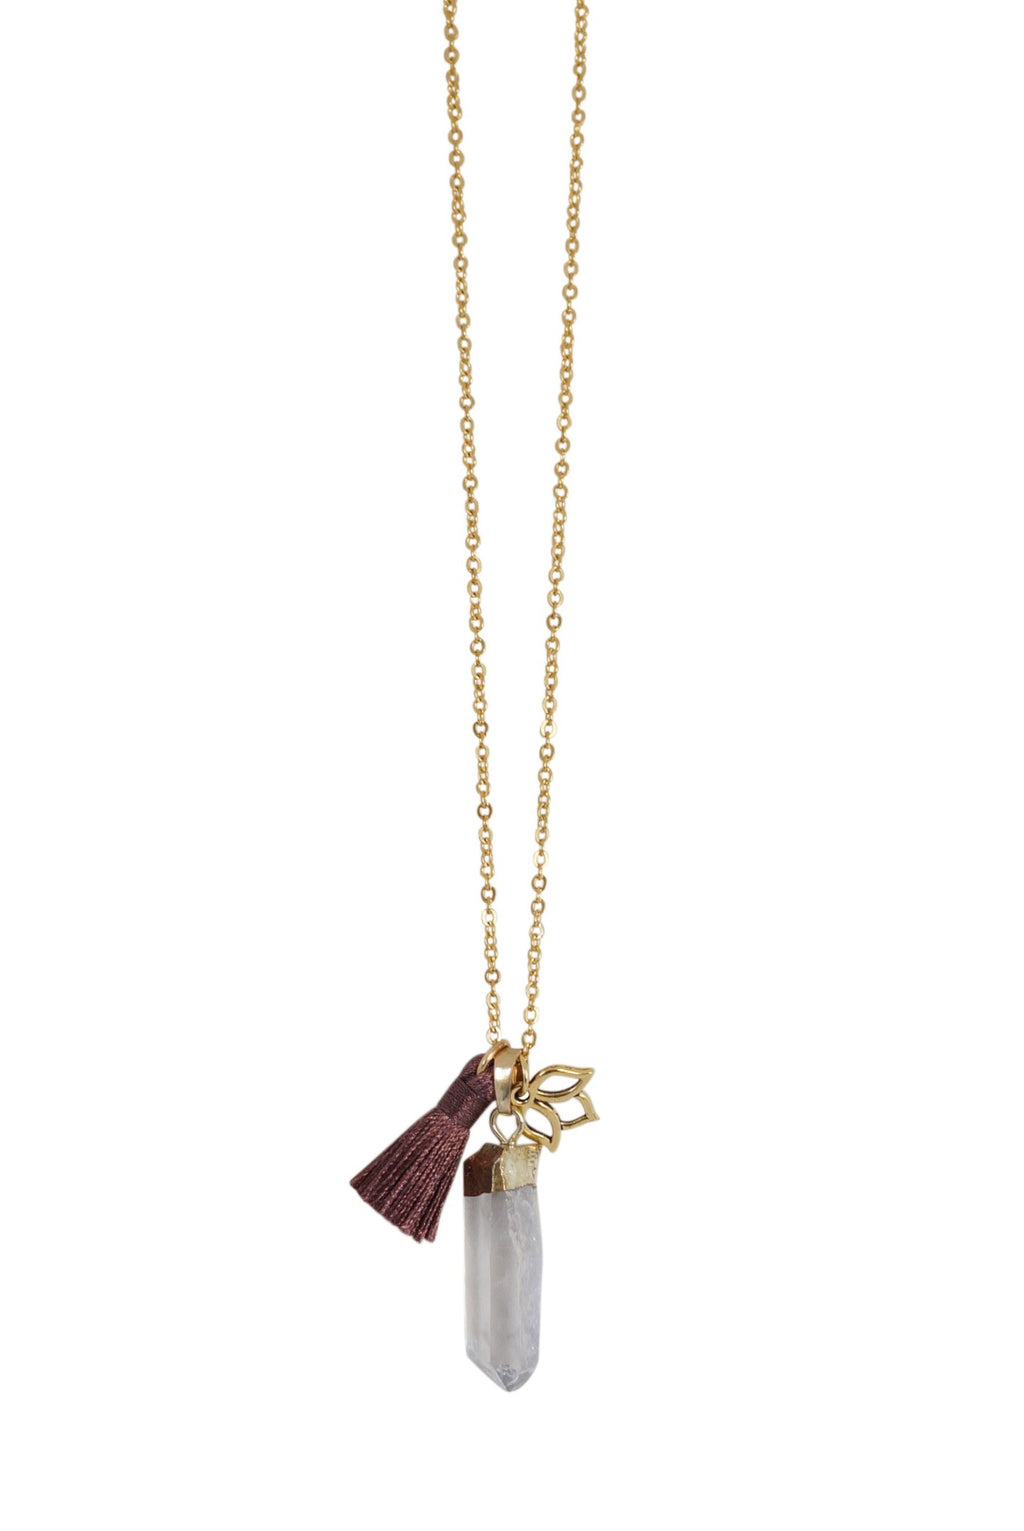 Devotion Necklace - Carolyn Hearn Designs